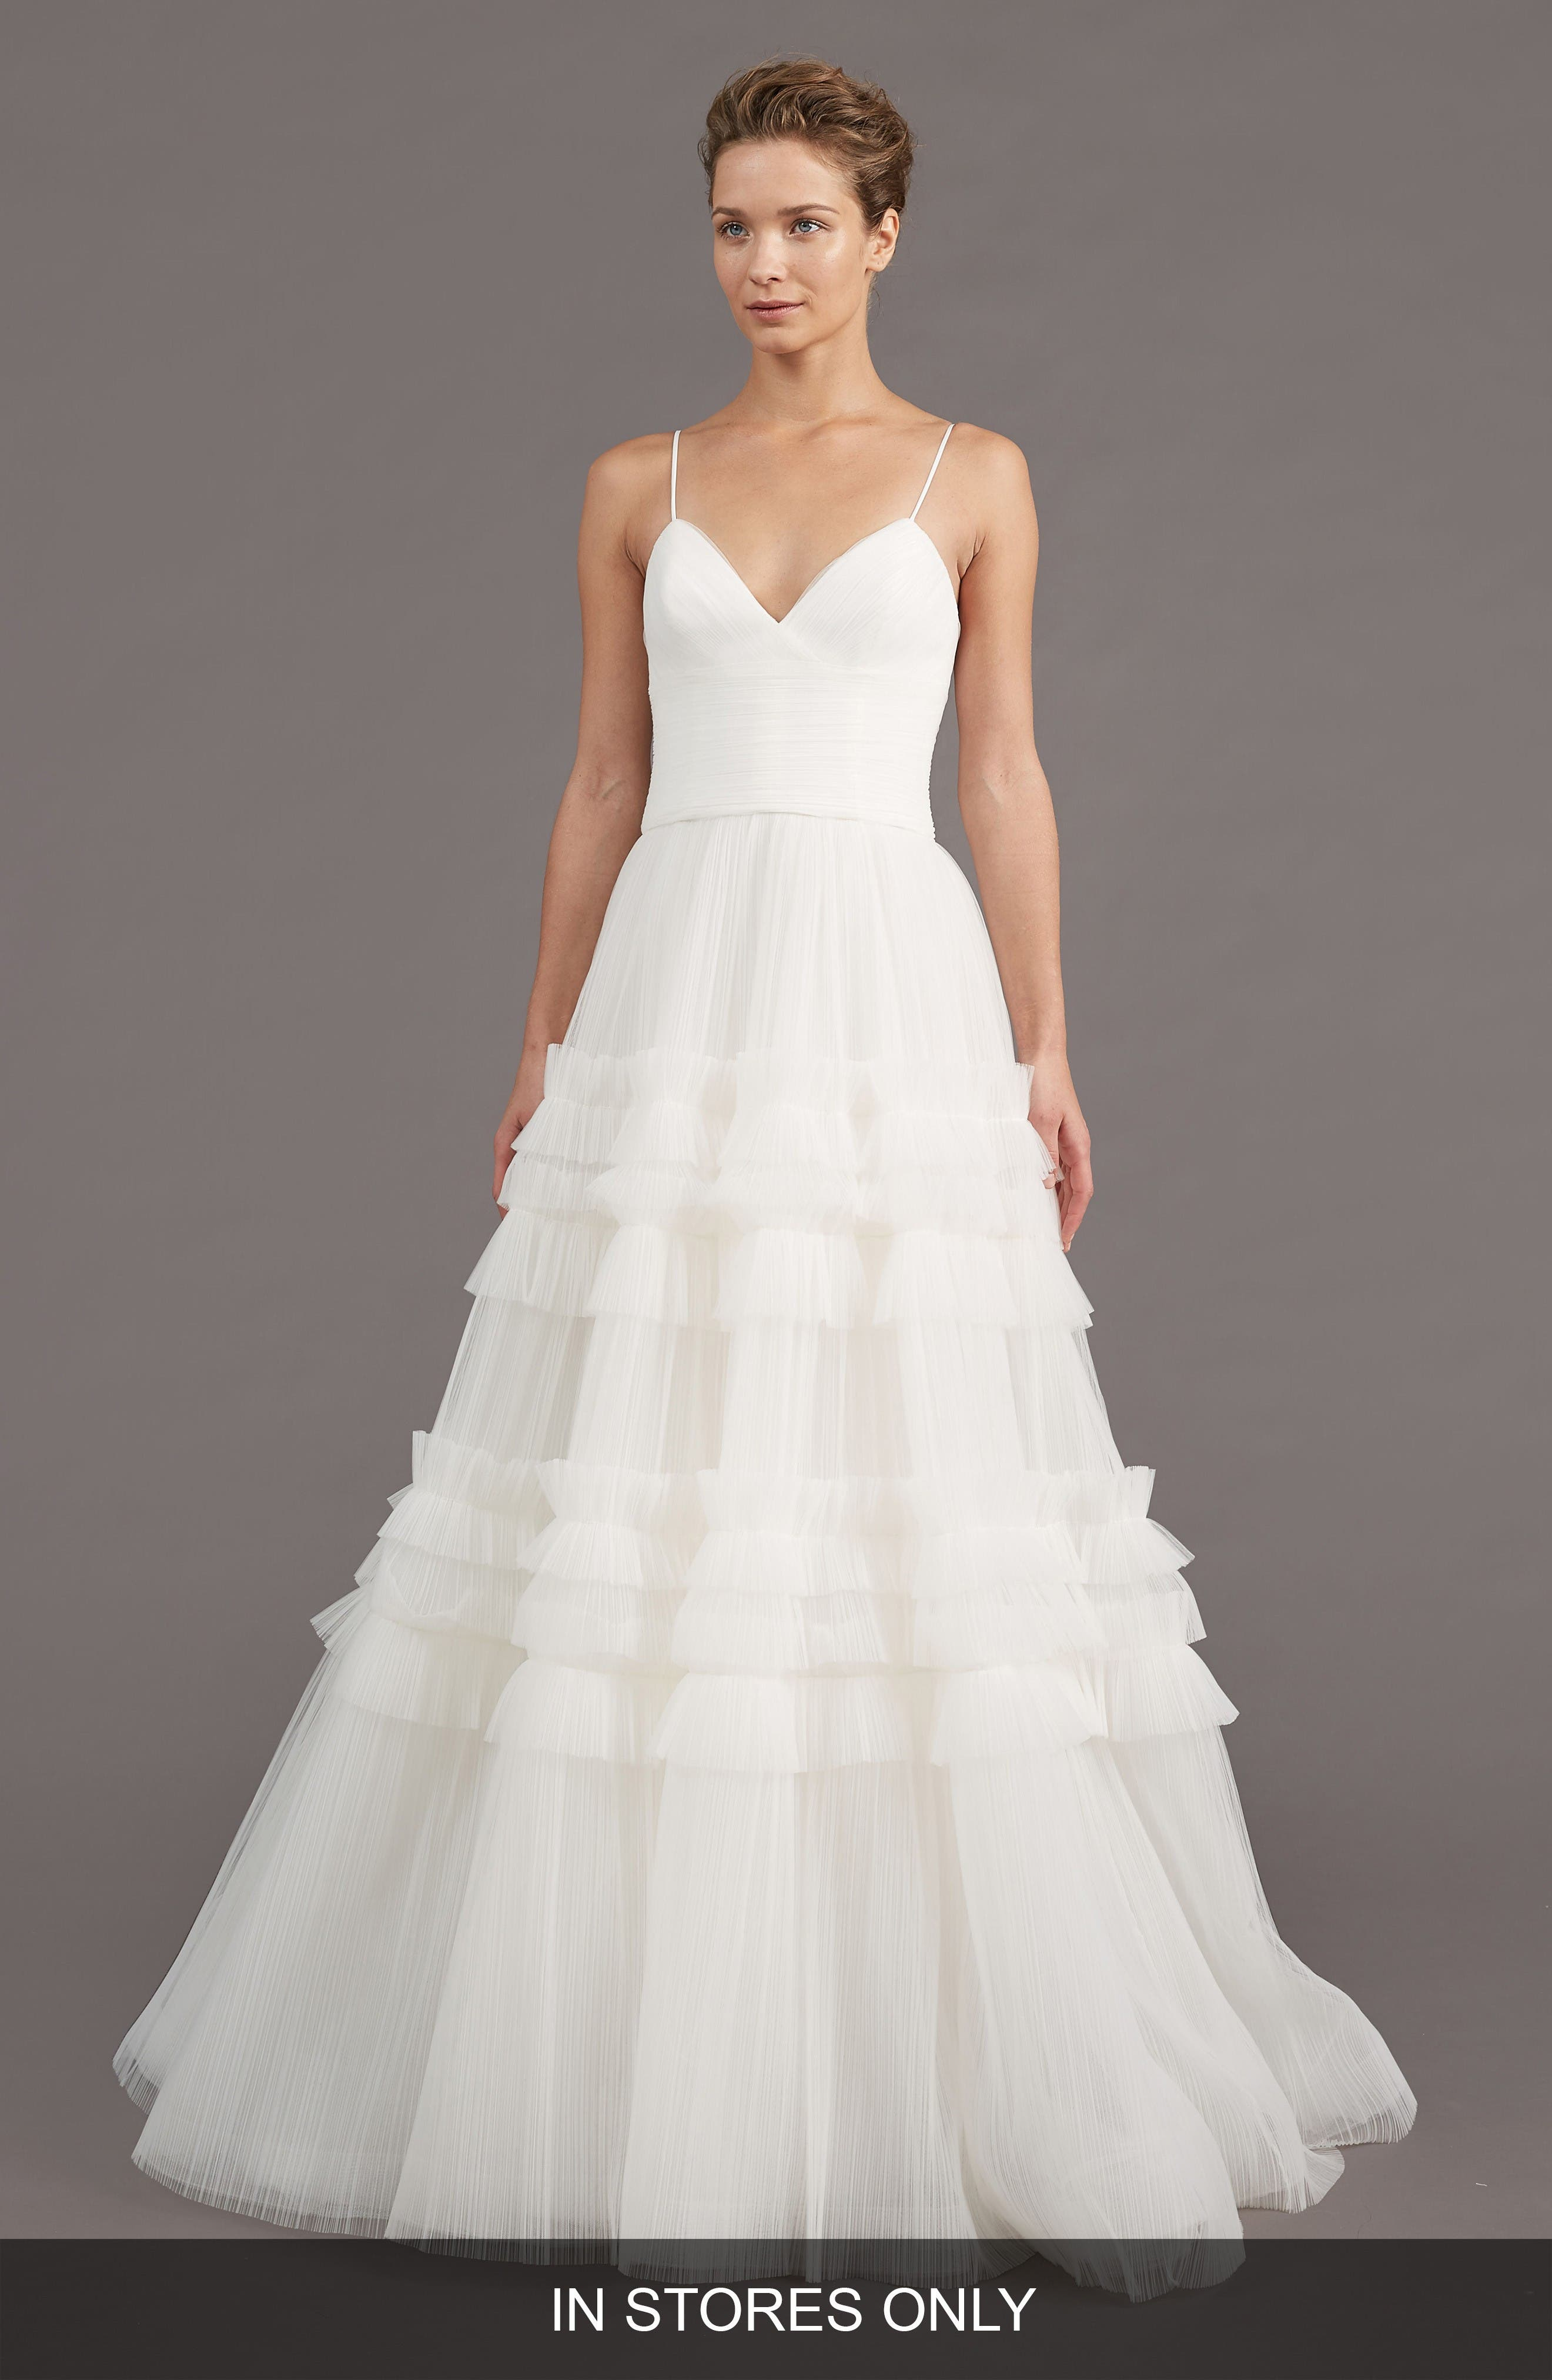 Saylor Ruffle A-Line Gown,                         Main,                         color, Ivory